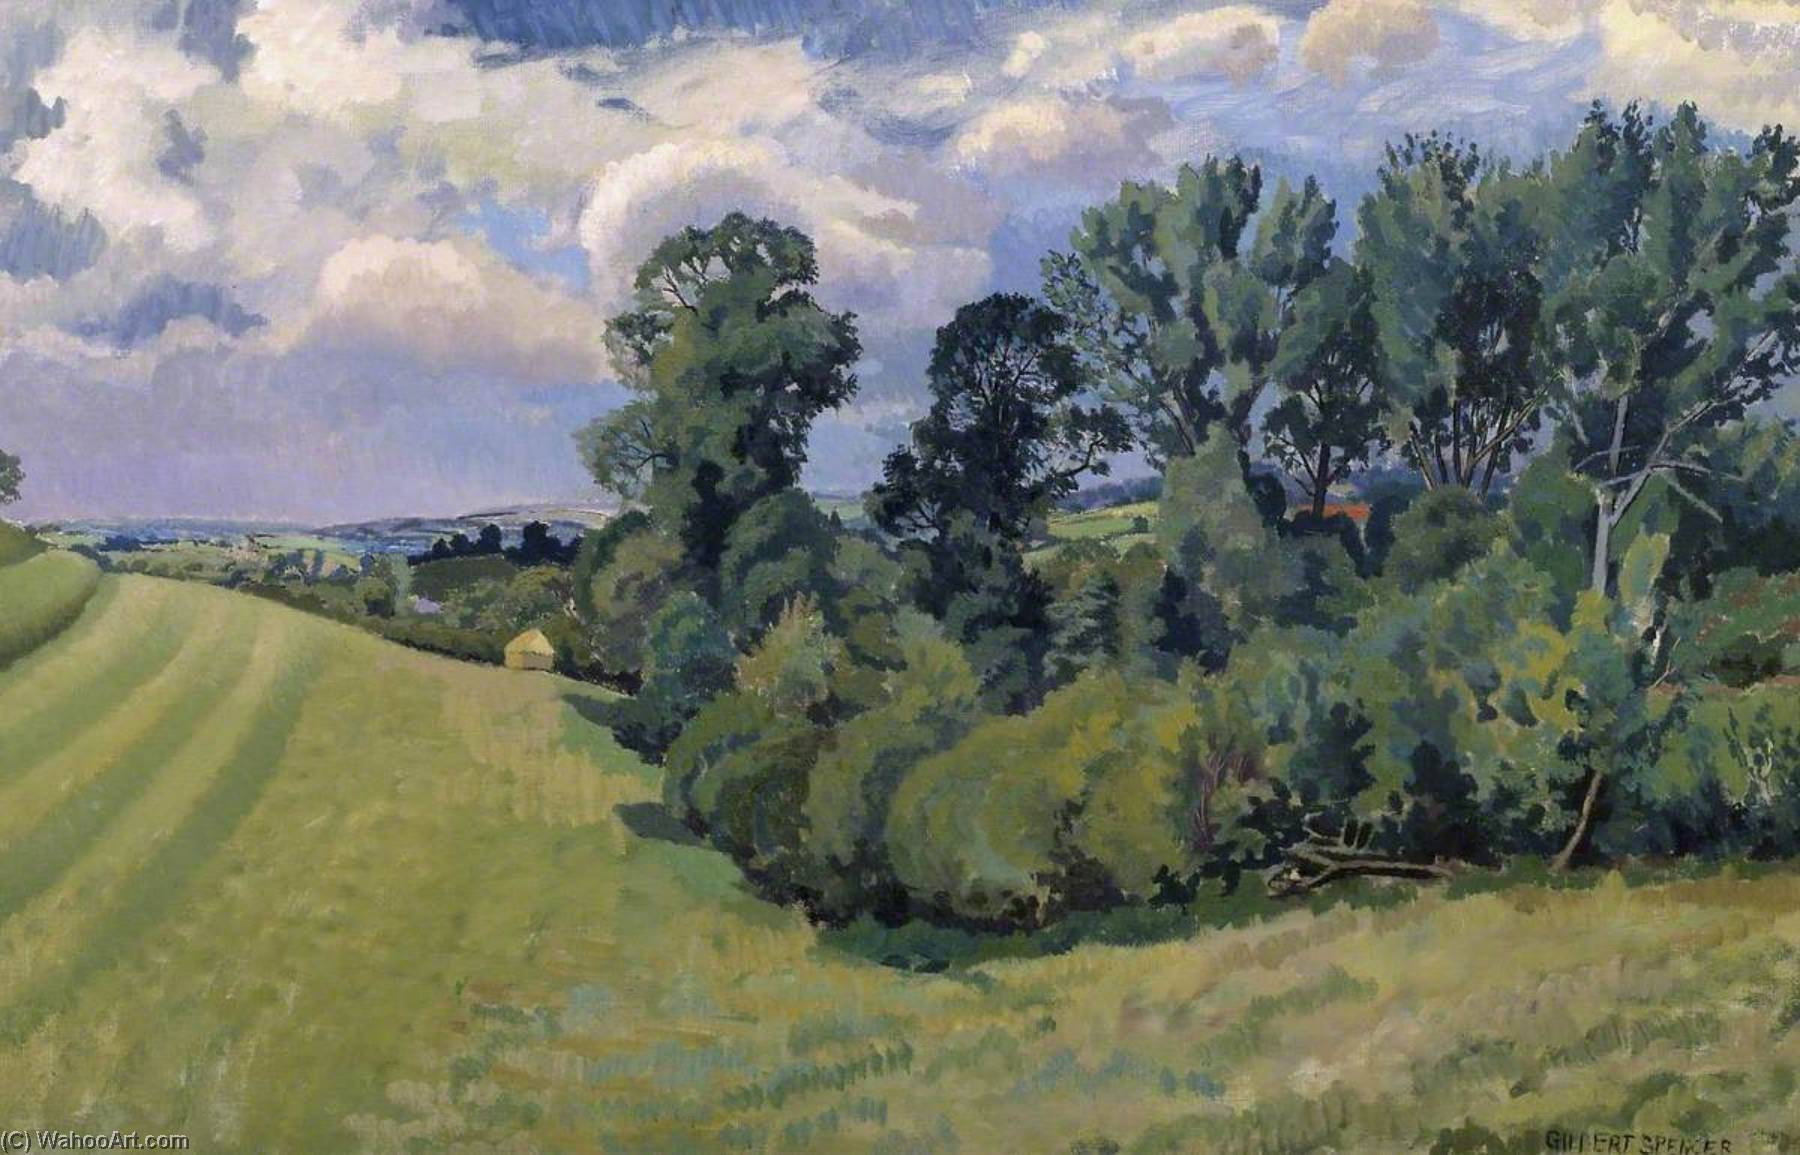 Blackmore Valle de compton abbas, óleo sobre lienzo de Gilbert Spencer (1892-1979, United Kingdom)